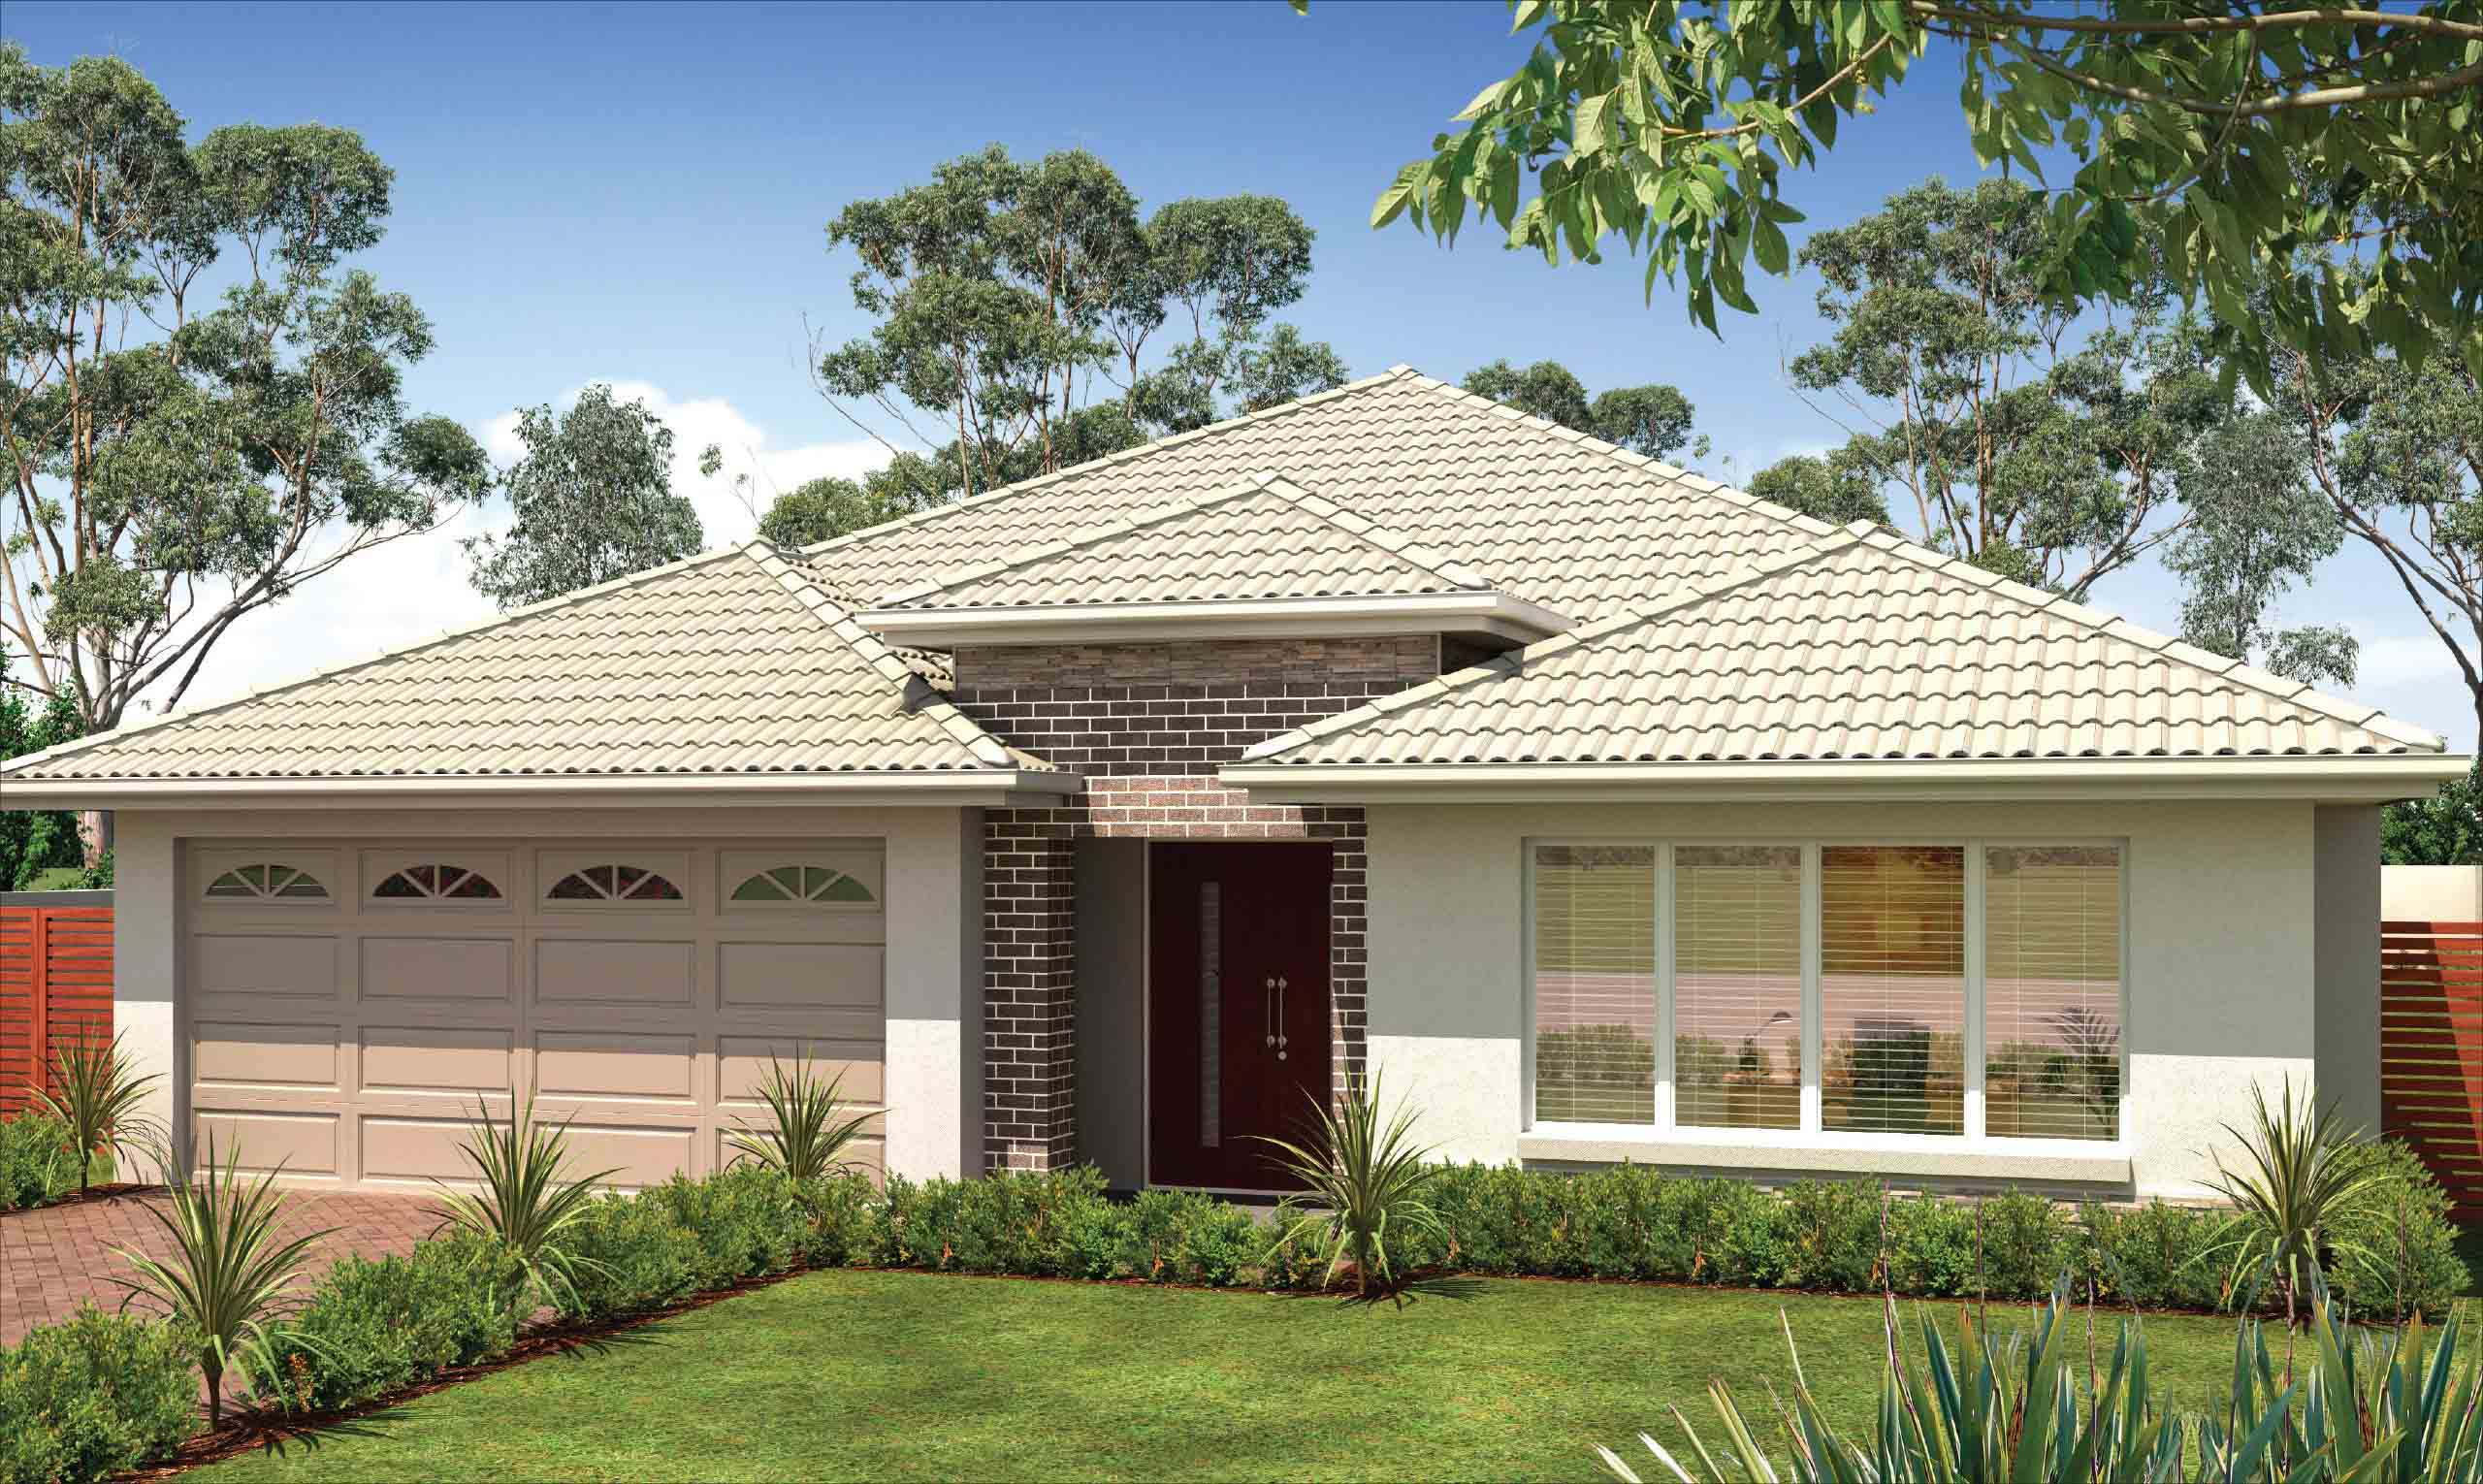 Roof Repair Costs Brisbane - Bayside Roof Repairs and Restoration